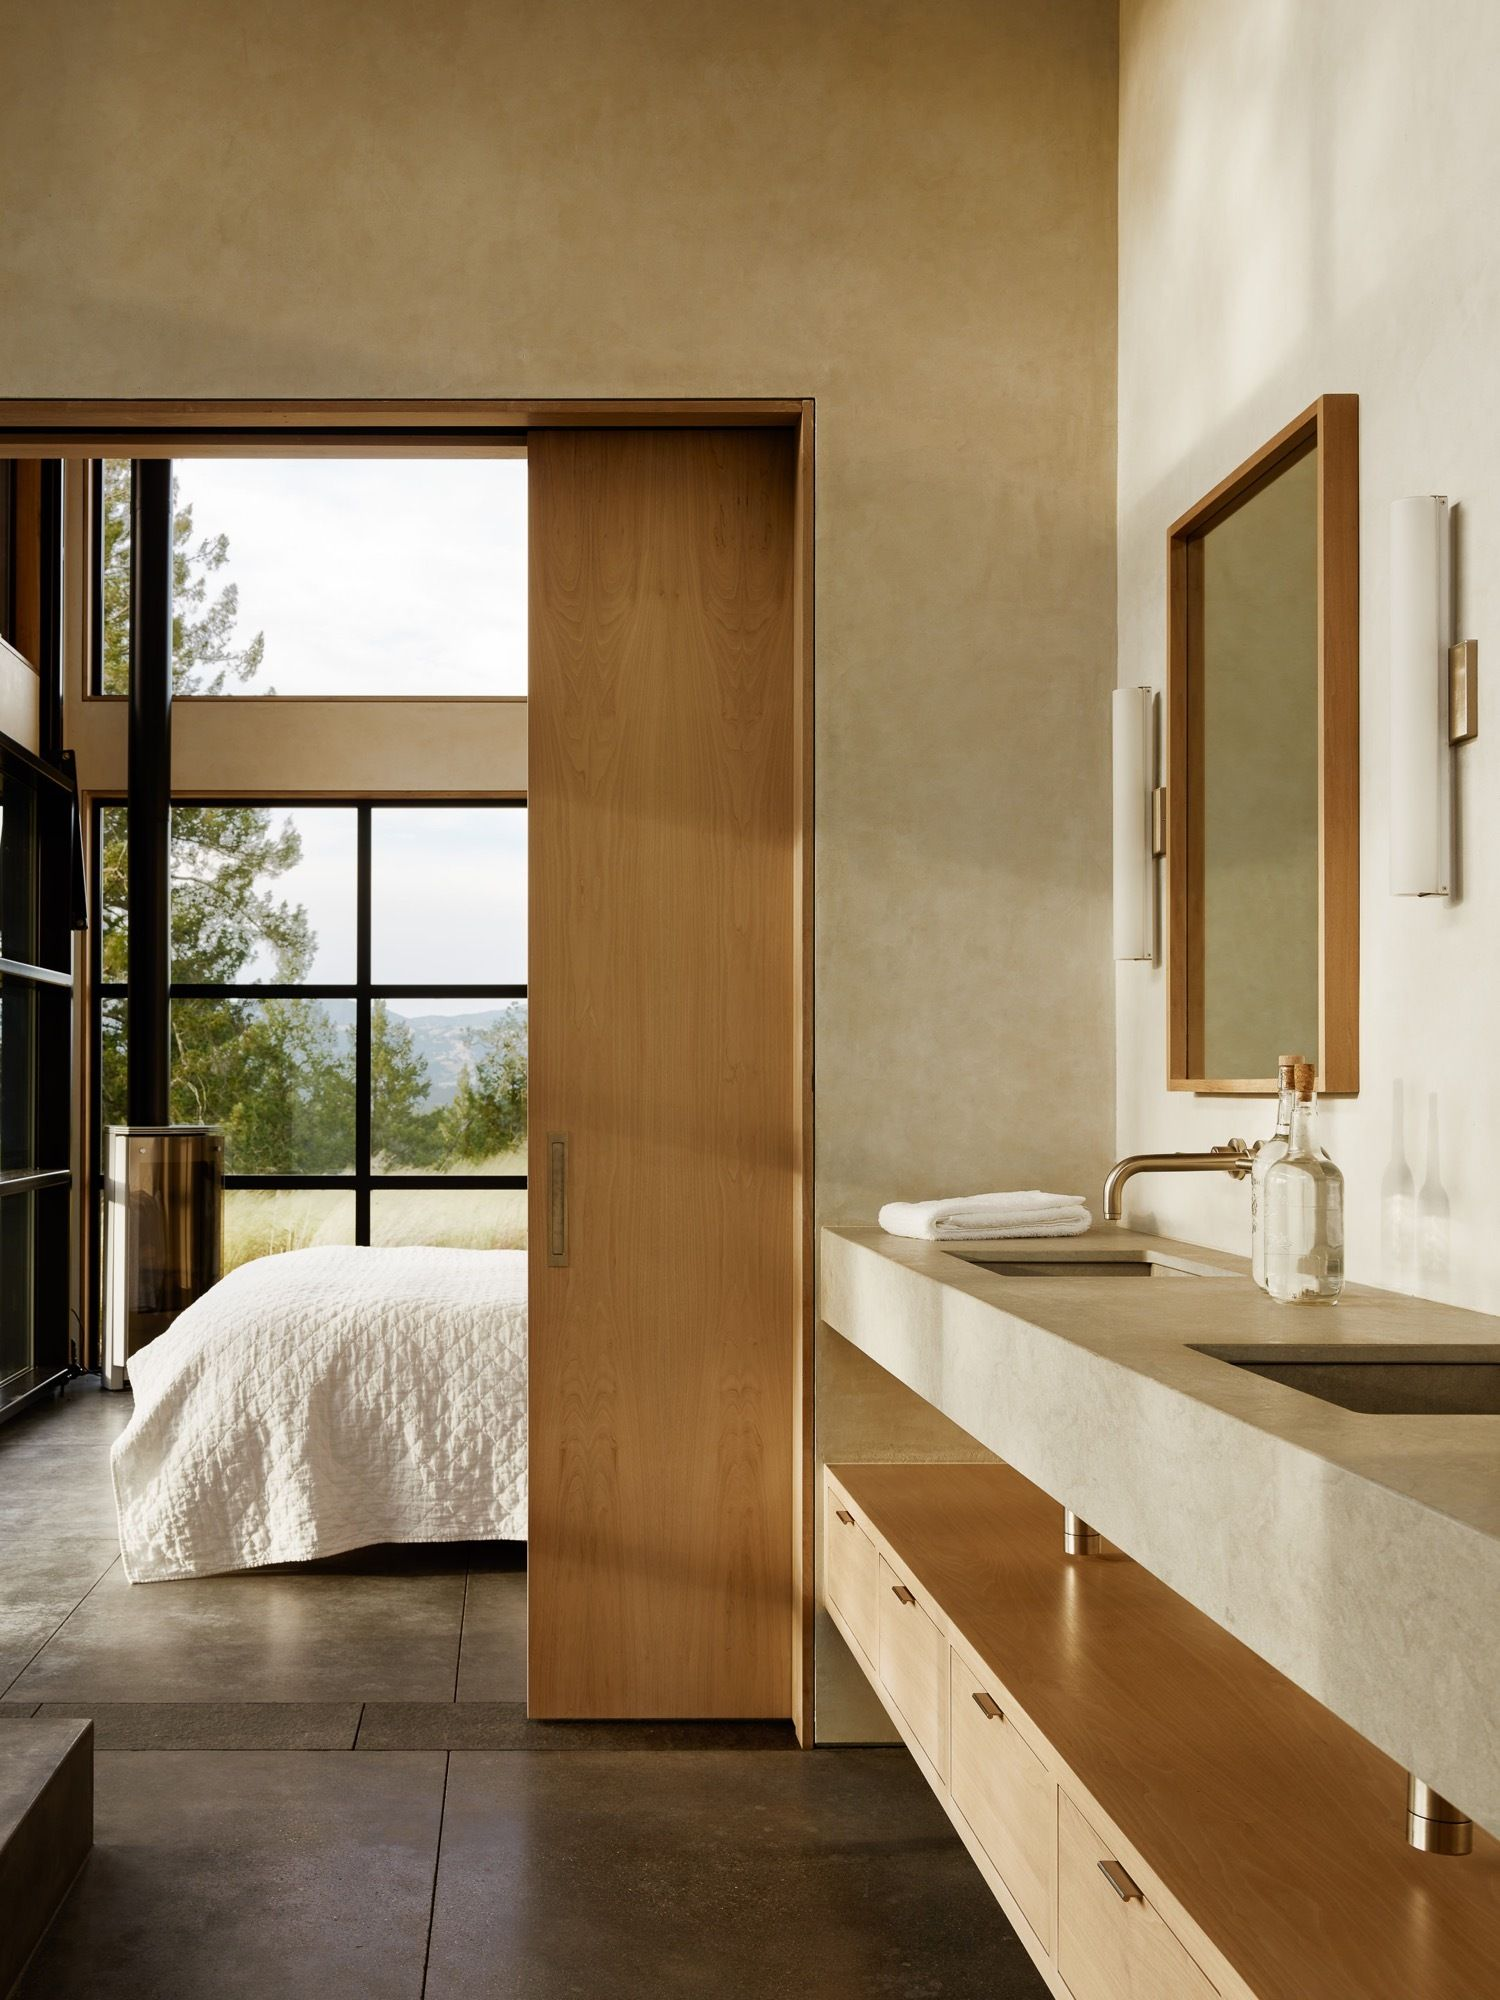 Large glass windows and doors connect the bedroom visually with the gorgeous outdoors